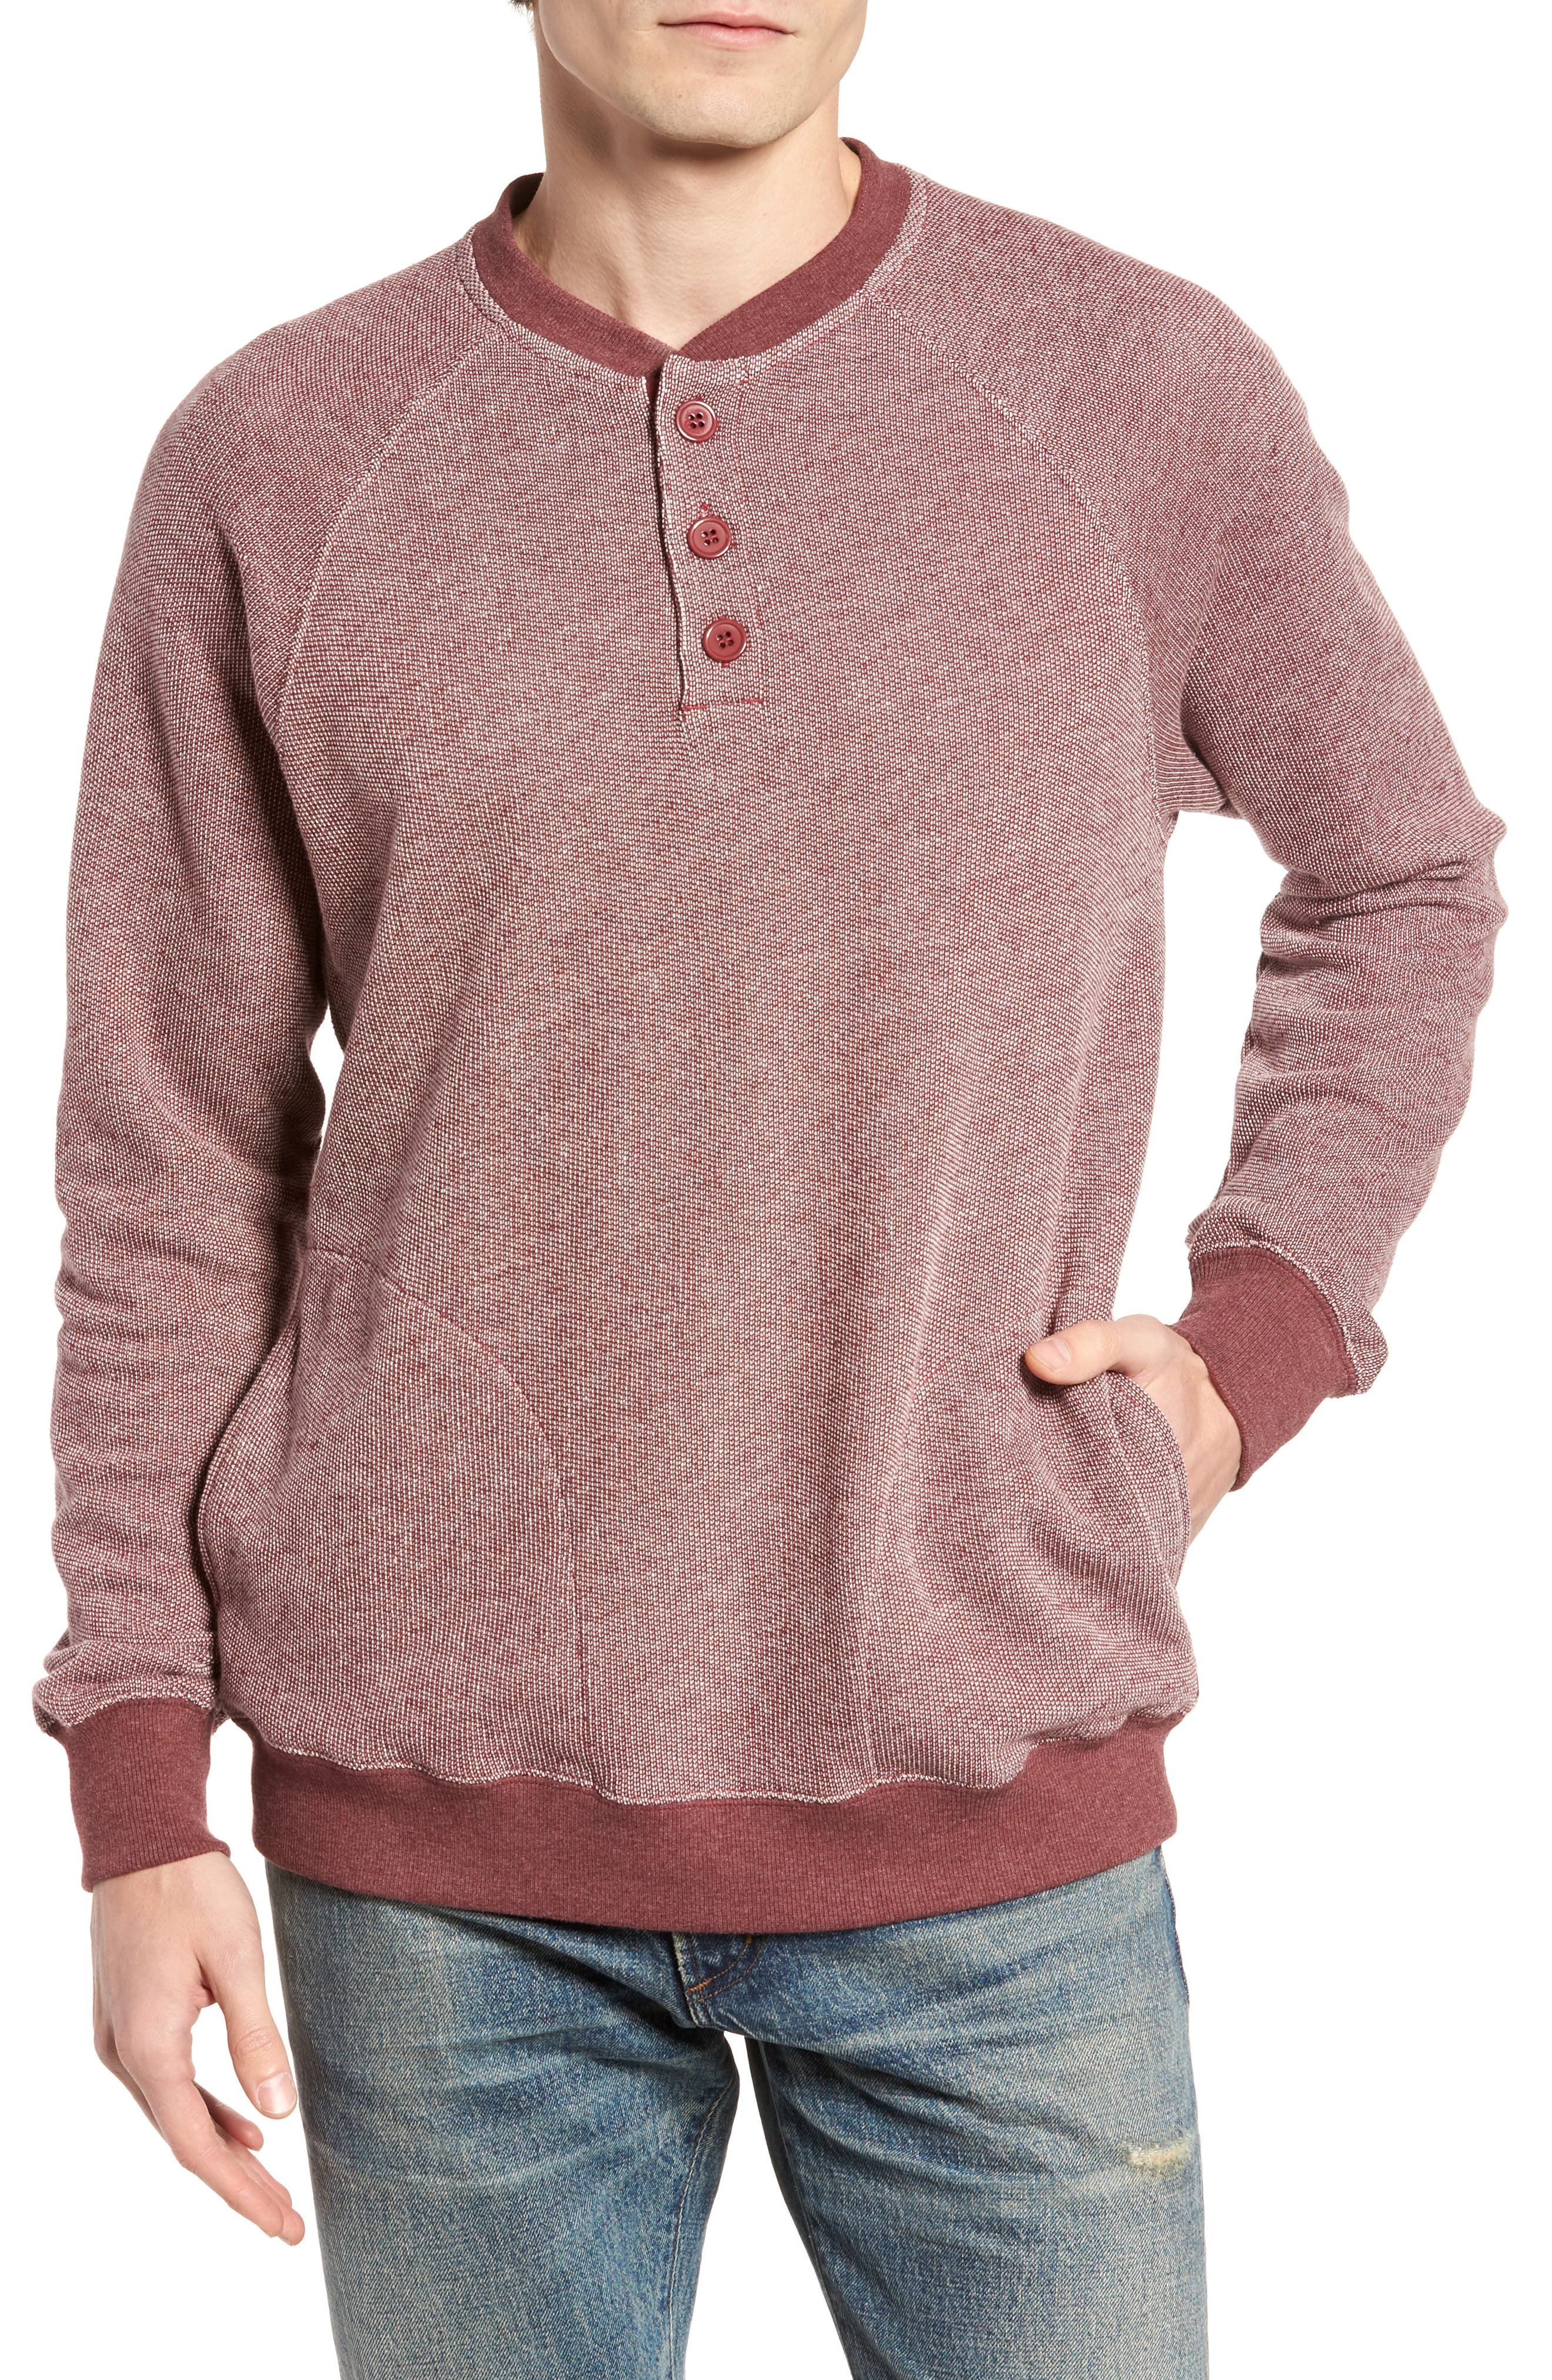 Capo Henley Pullover,                         Main,                         color, Tawny Port